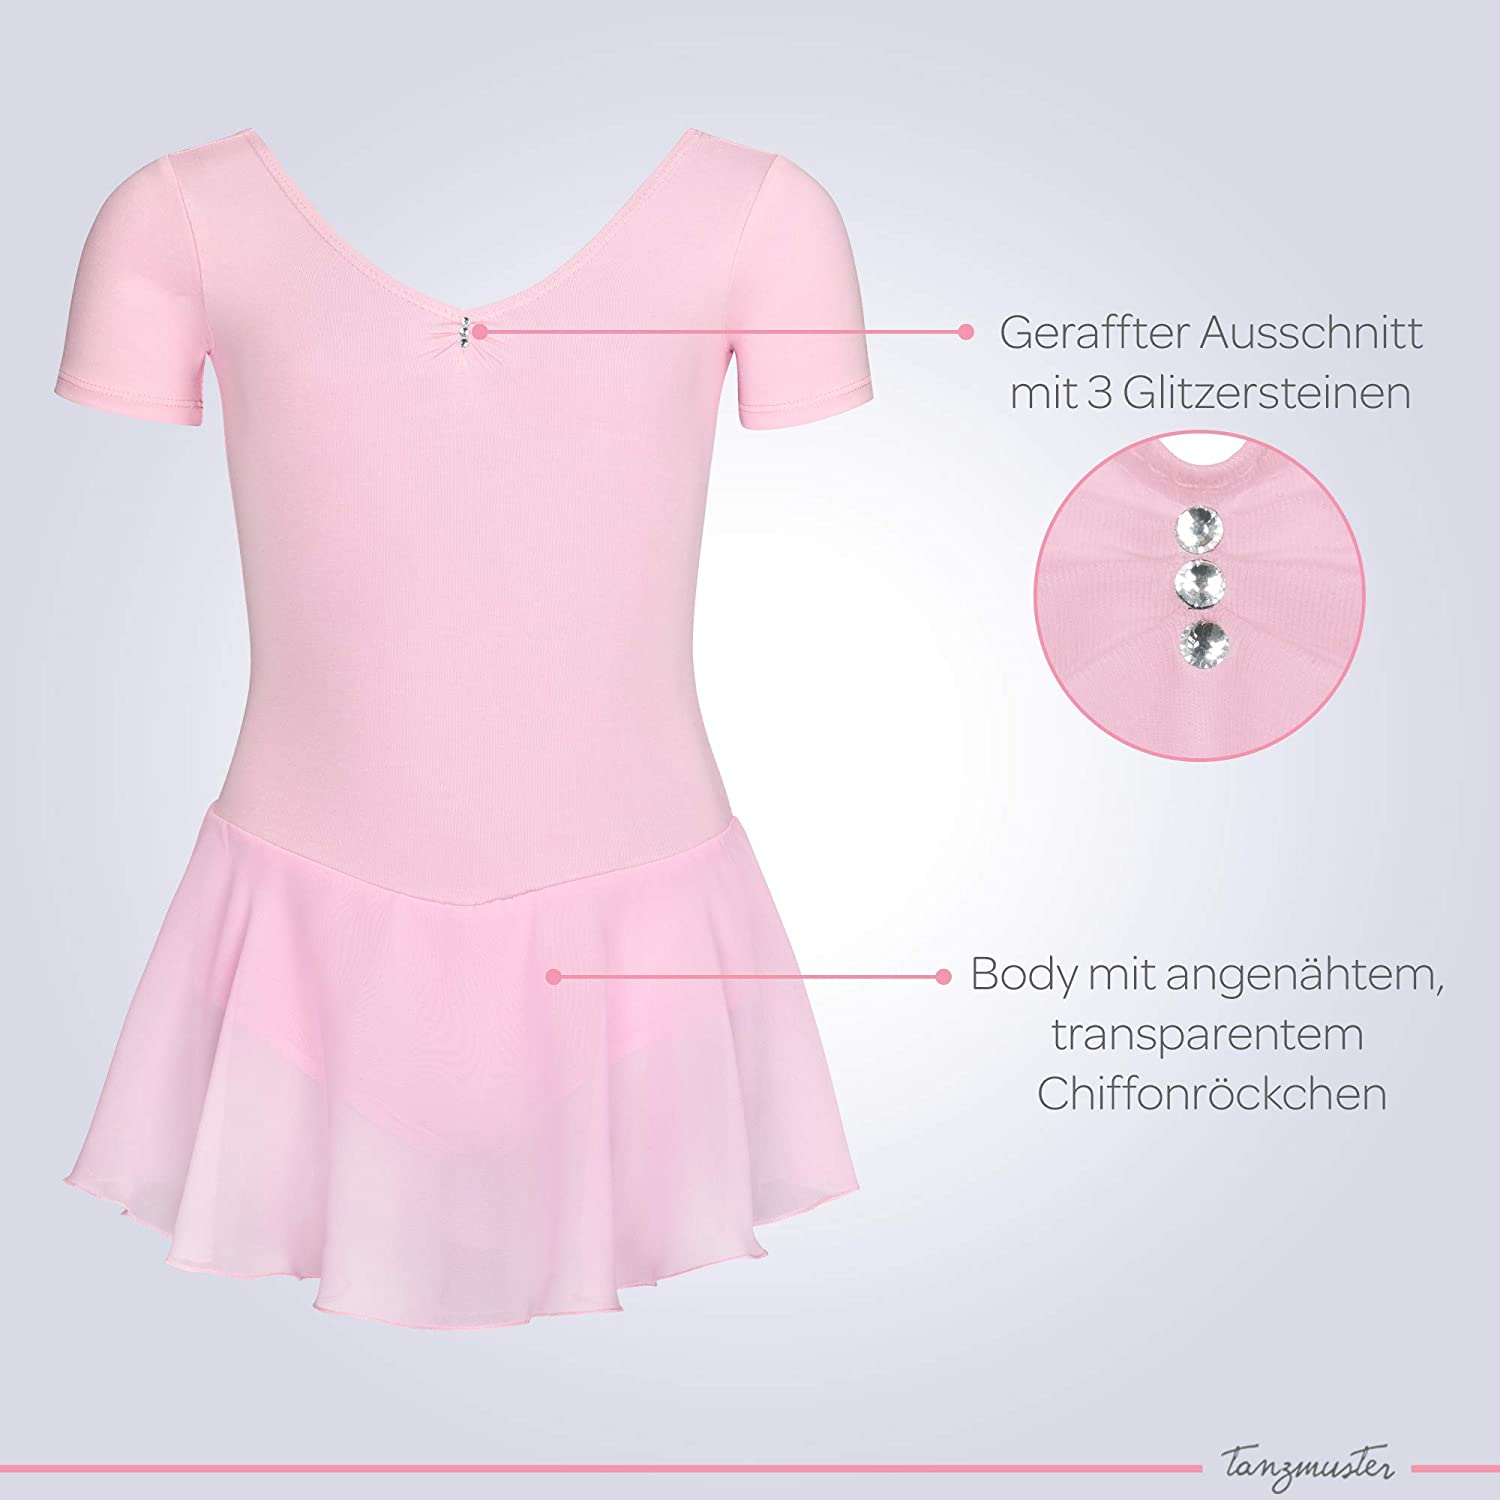 tanzmuster girls/´ short-sleeved ballet leotard Betty with chiffon skirt and rhinestones made of soft and durable cotton blend beautiful dance dress for children in many colors